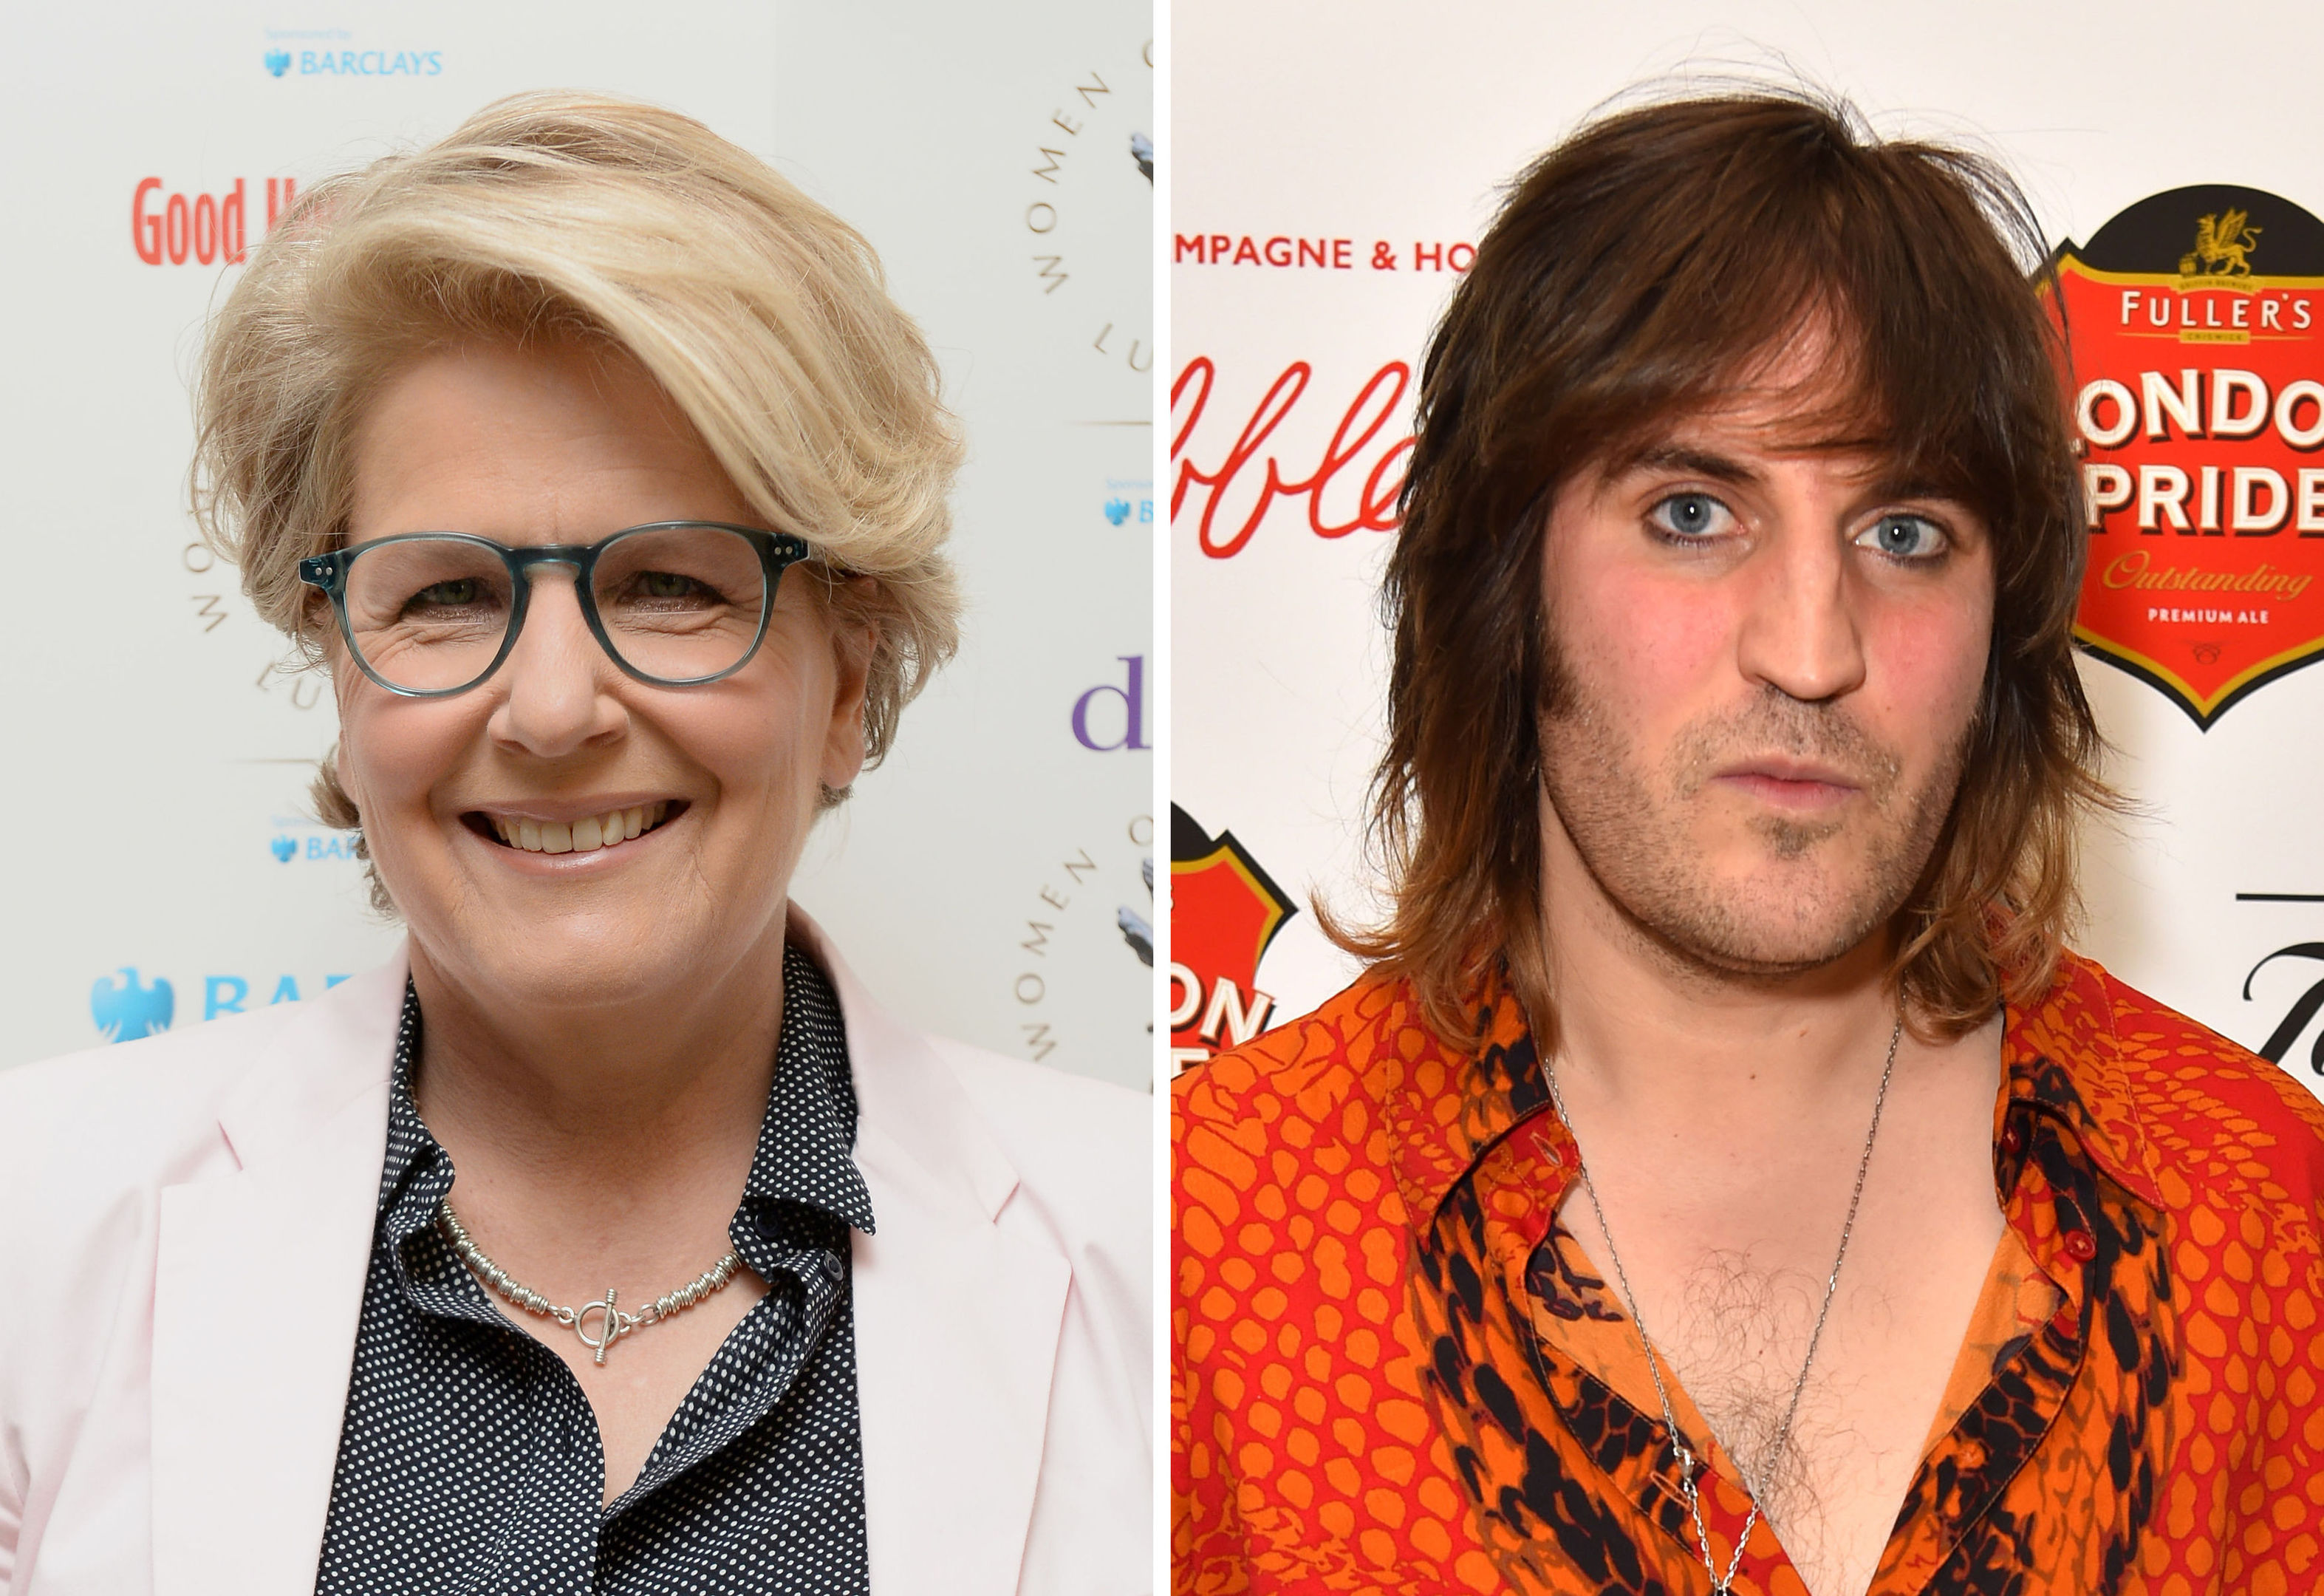 Sandi Toksvig and Noel Fielding